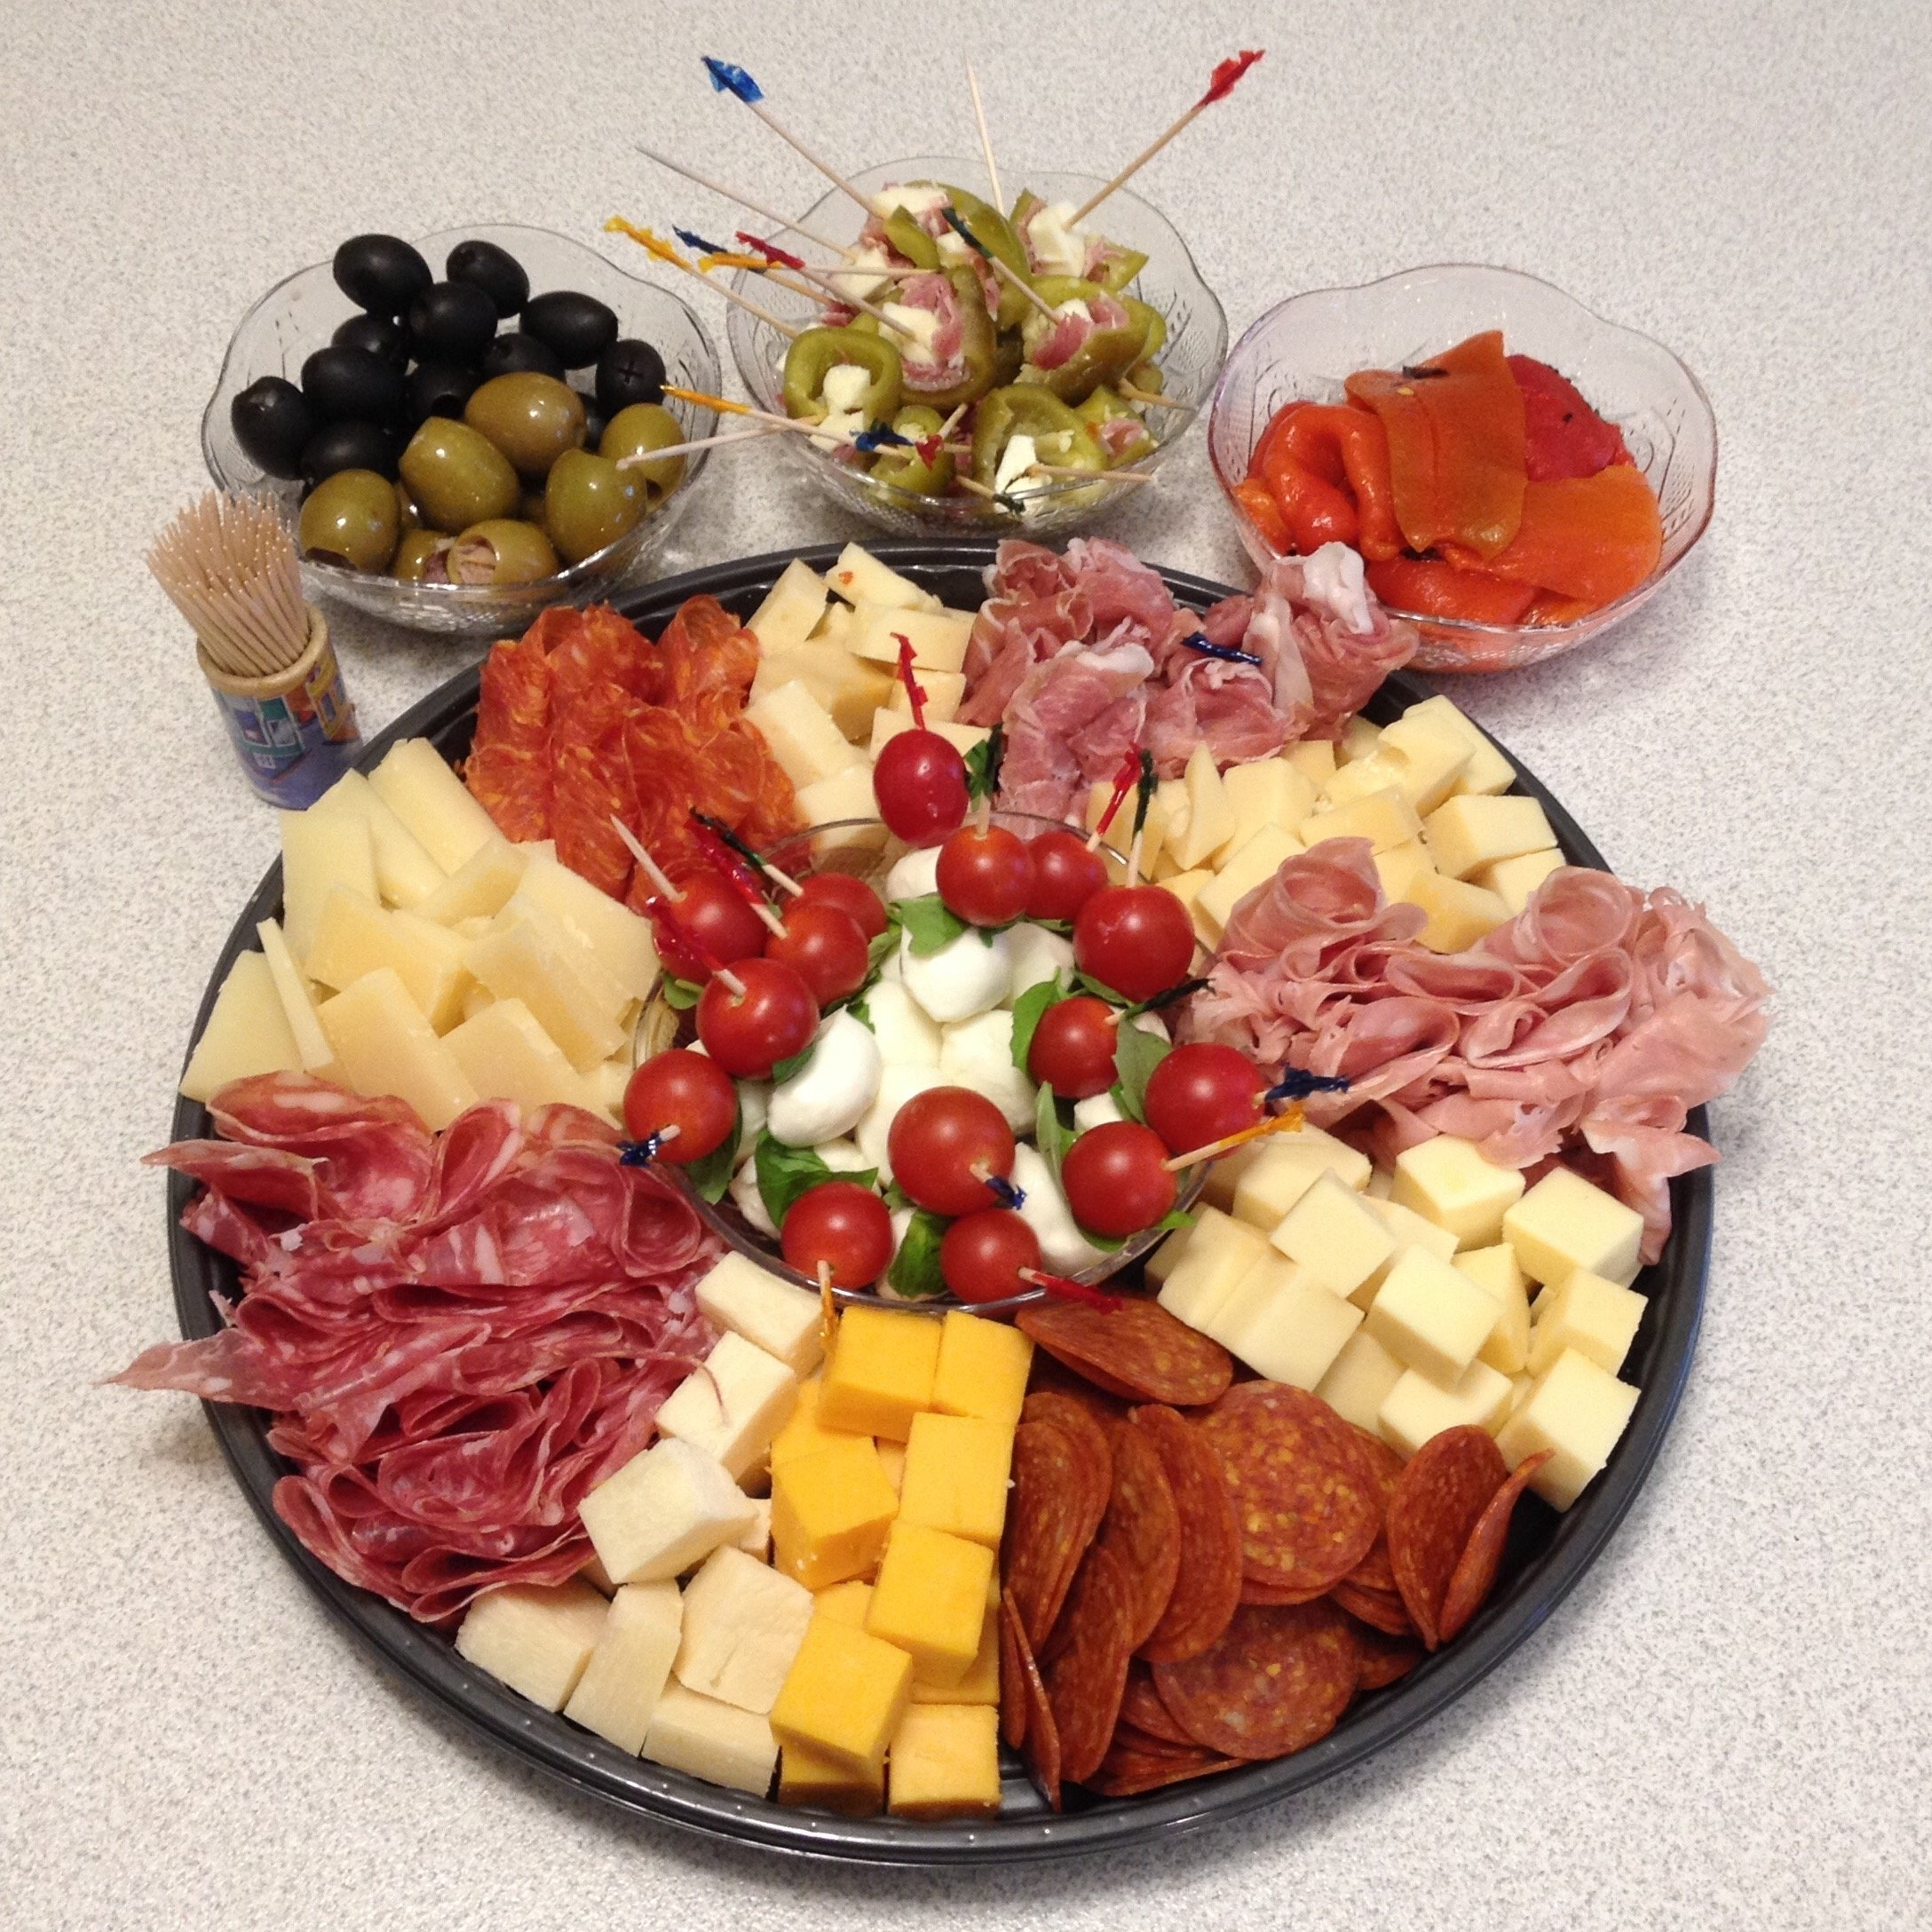 10 Unique Meat And Cheese Platter Ideas italian meat cheese platter everybodylovesitalian 2021